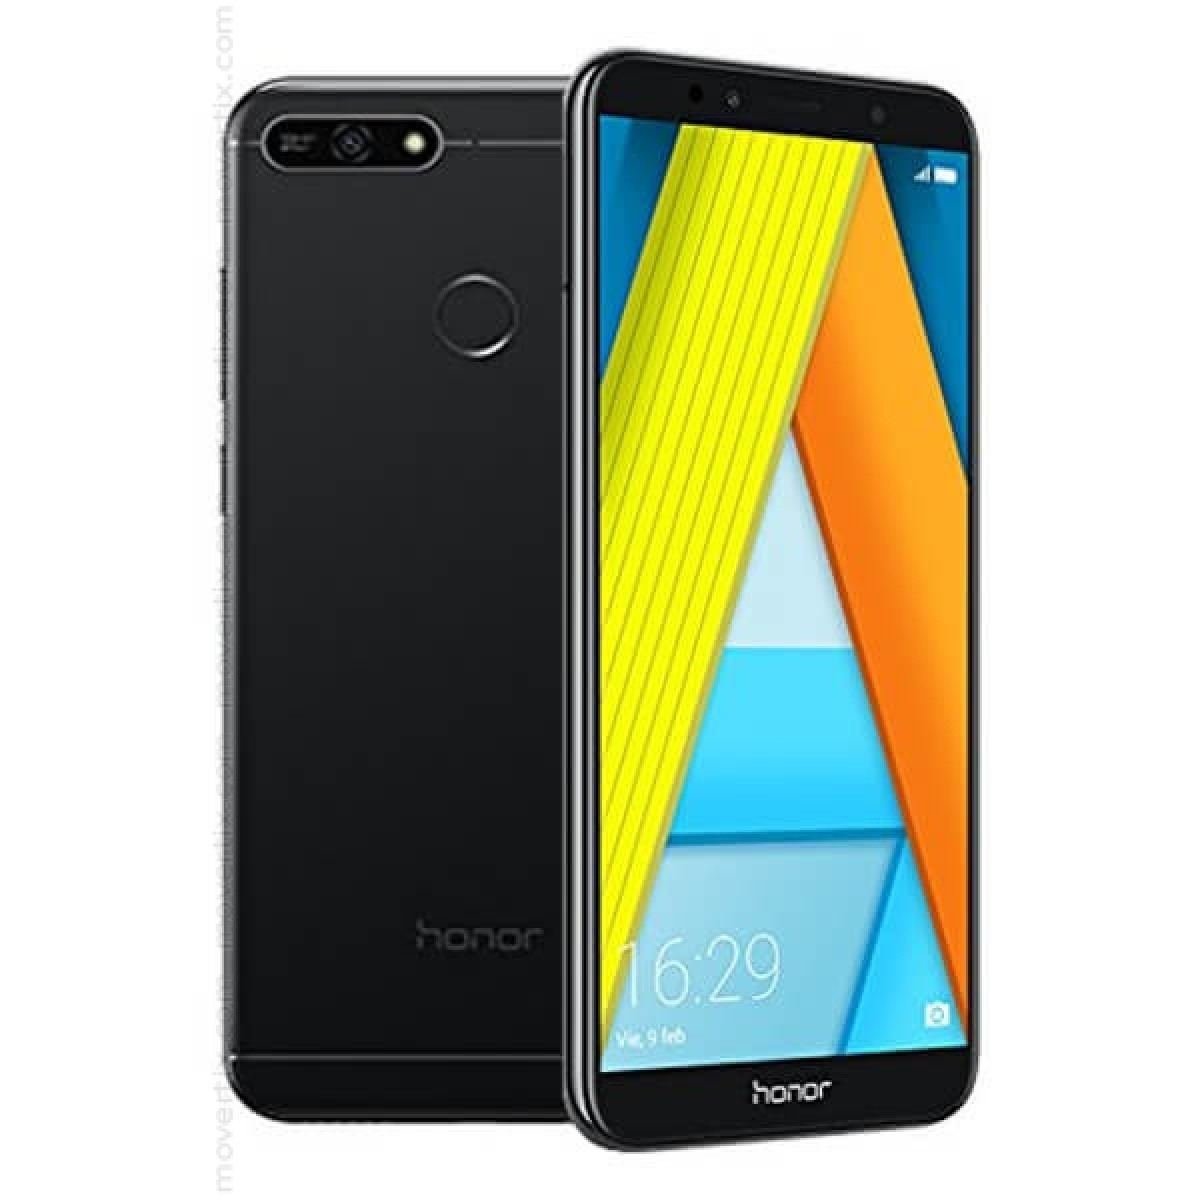 2gb ram mobile 2 way wiring diagram for a light switch honor 7a dual sim black 16gb and 6901443228256